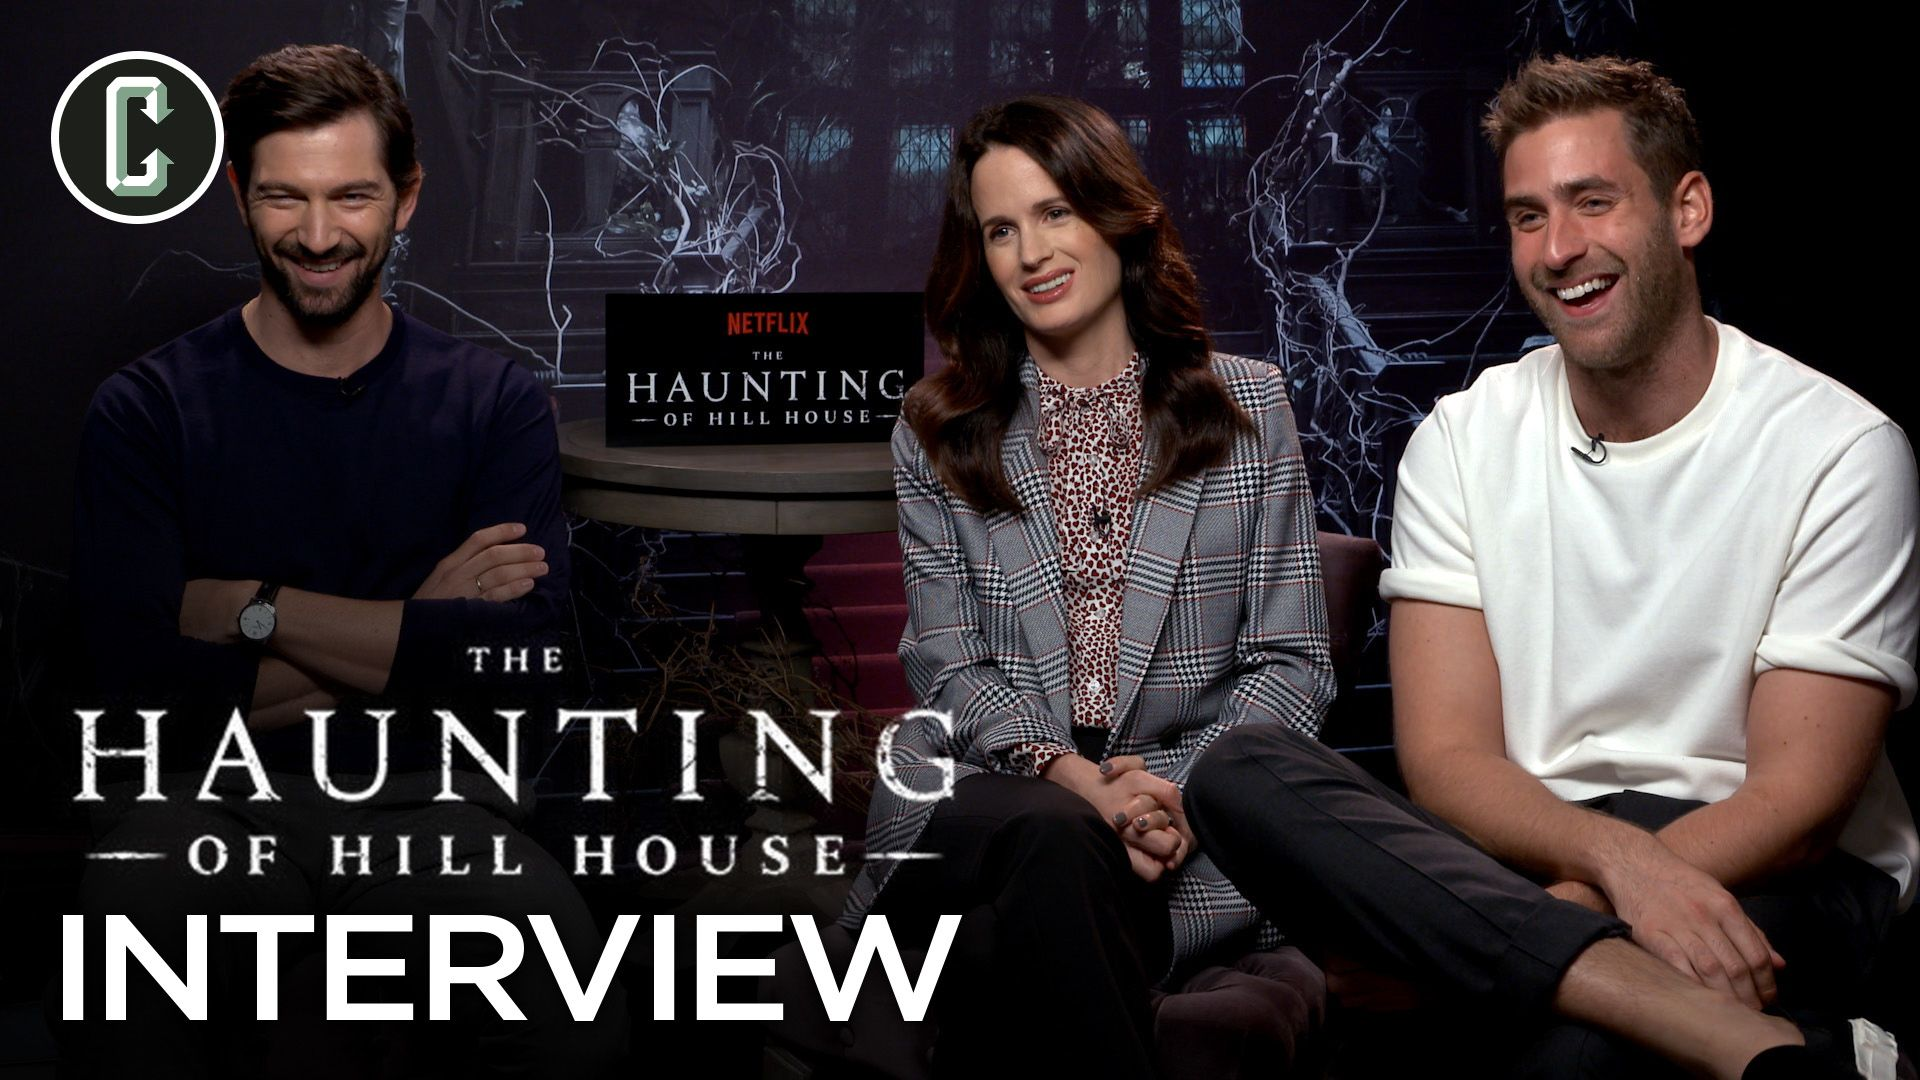 The Haunting of Hill House Cast on Mike Flanagan and Netflix | Collider